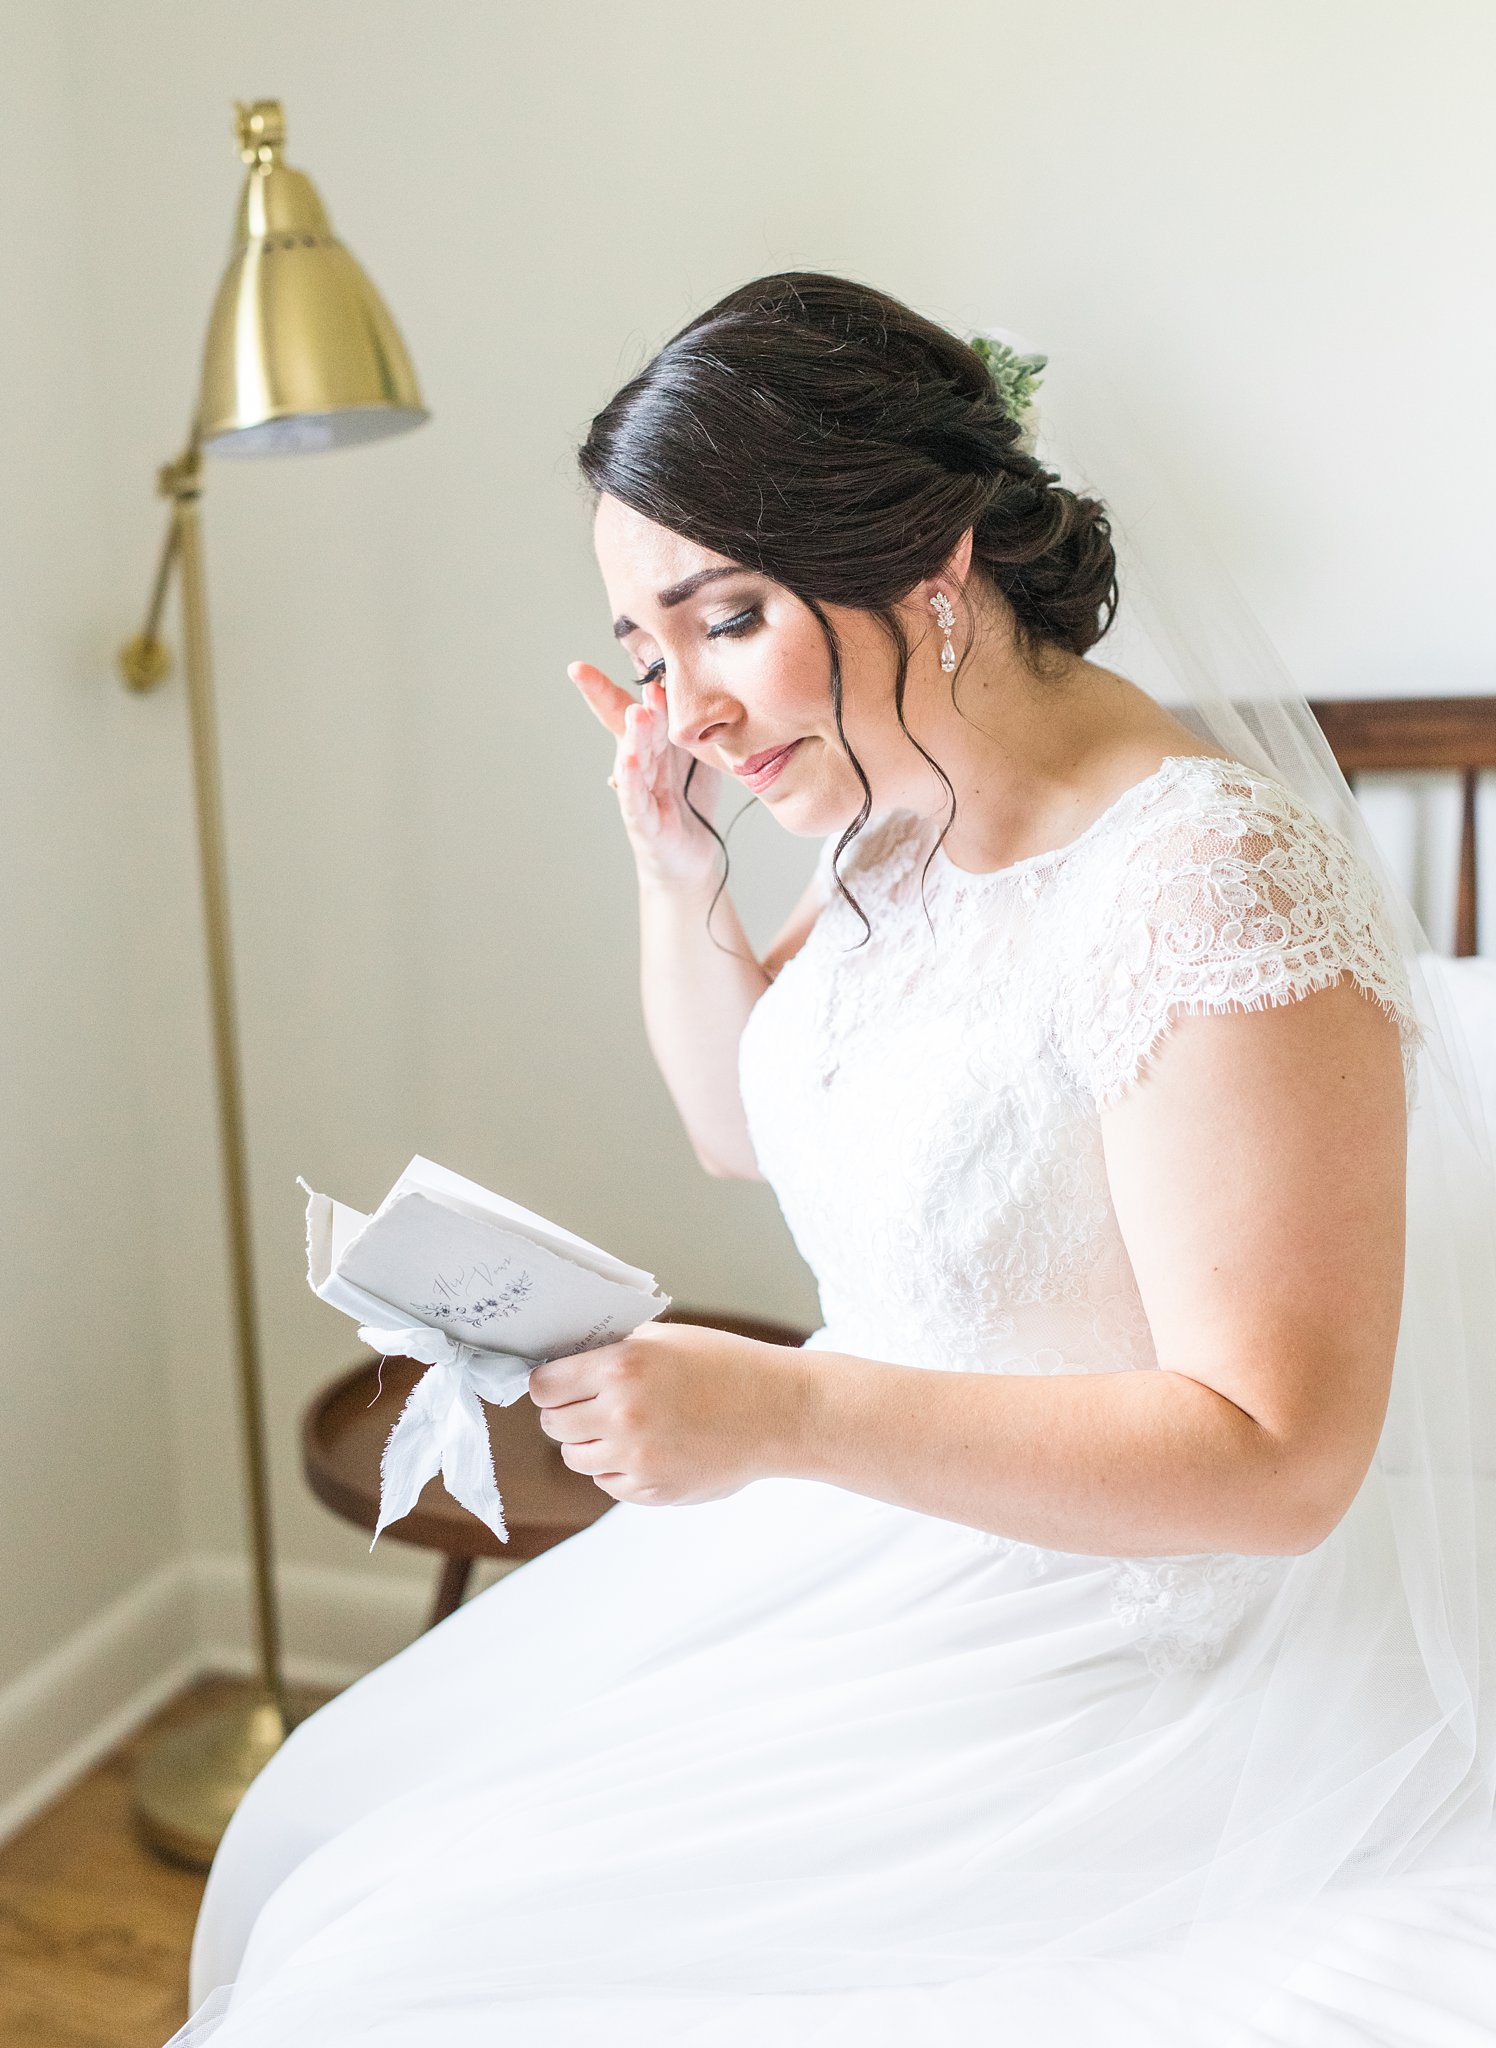 Emotional bride reading letter from groom, Britannia Yacht Club Wedding Photos, Amy Pinder Photography